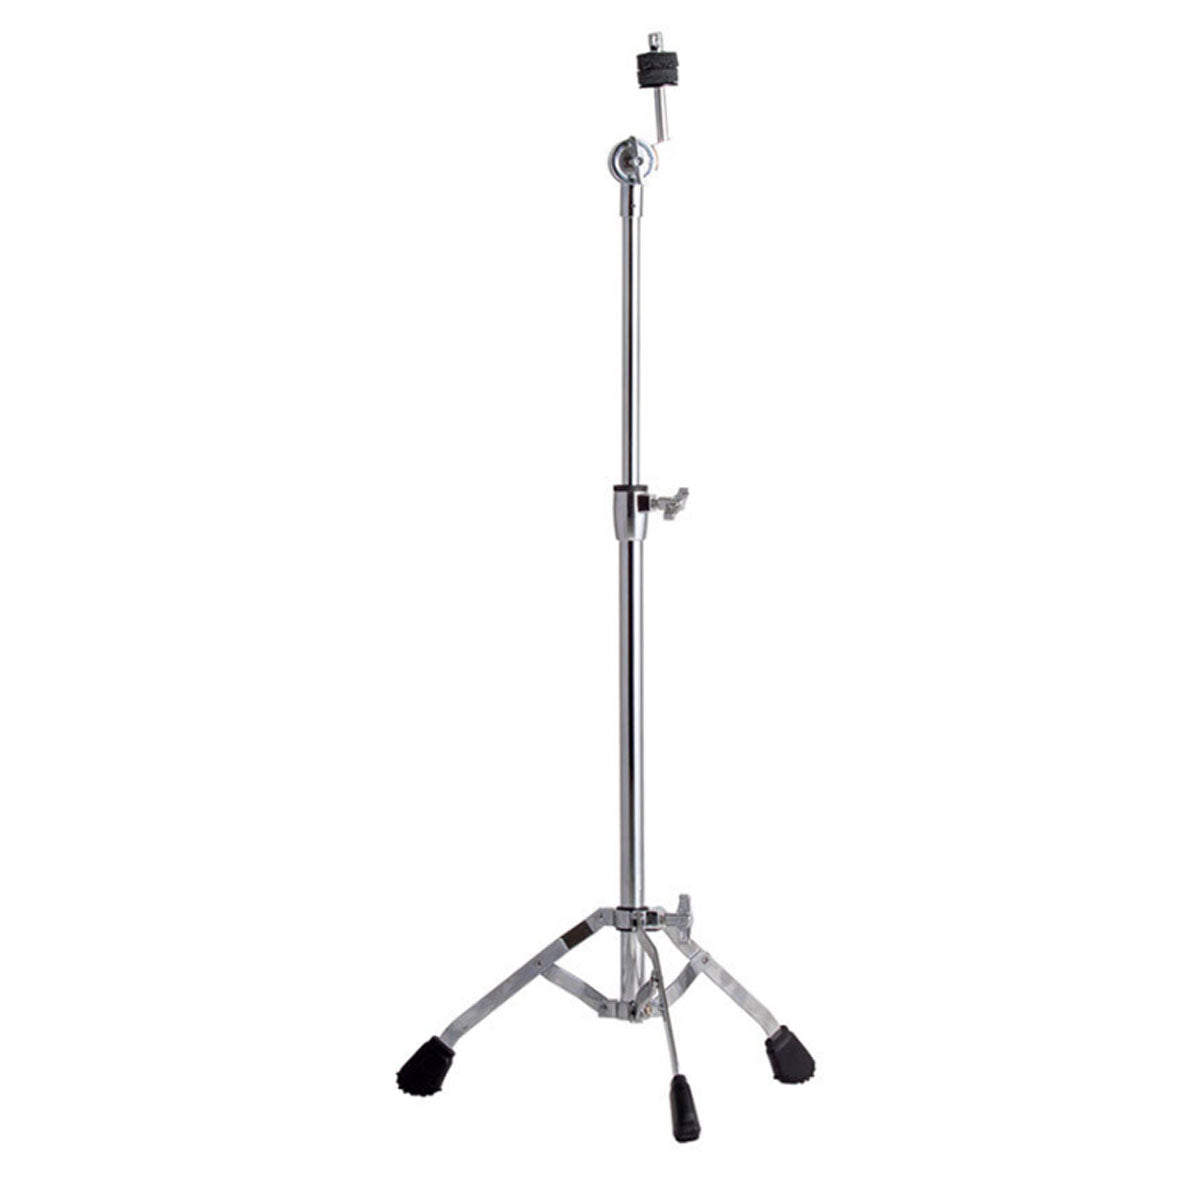 Dixon Little Roomer Series Straight Cymbal Stand - PSYLR